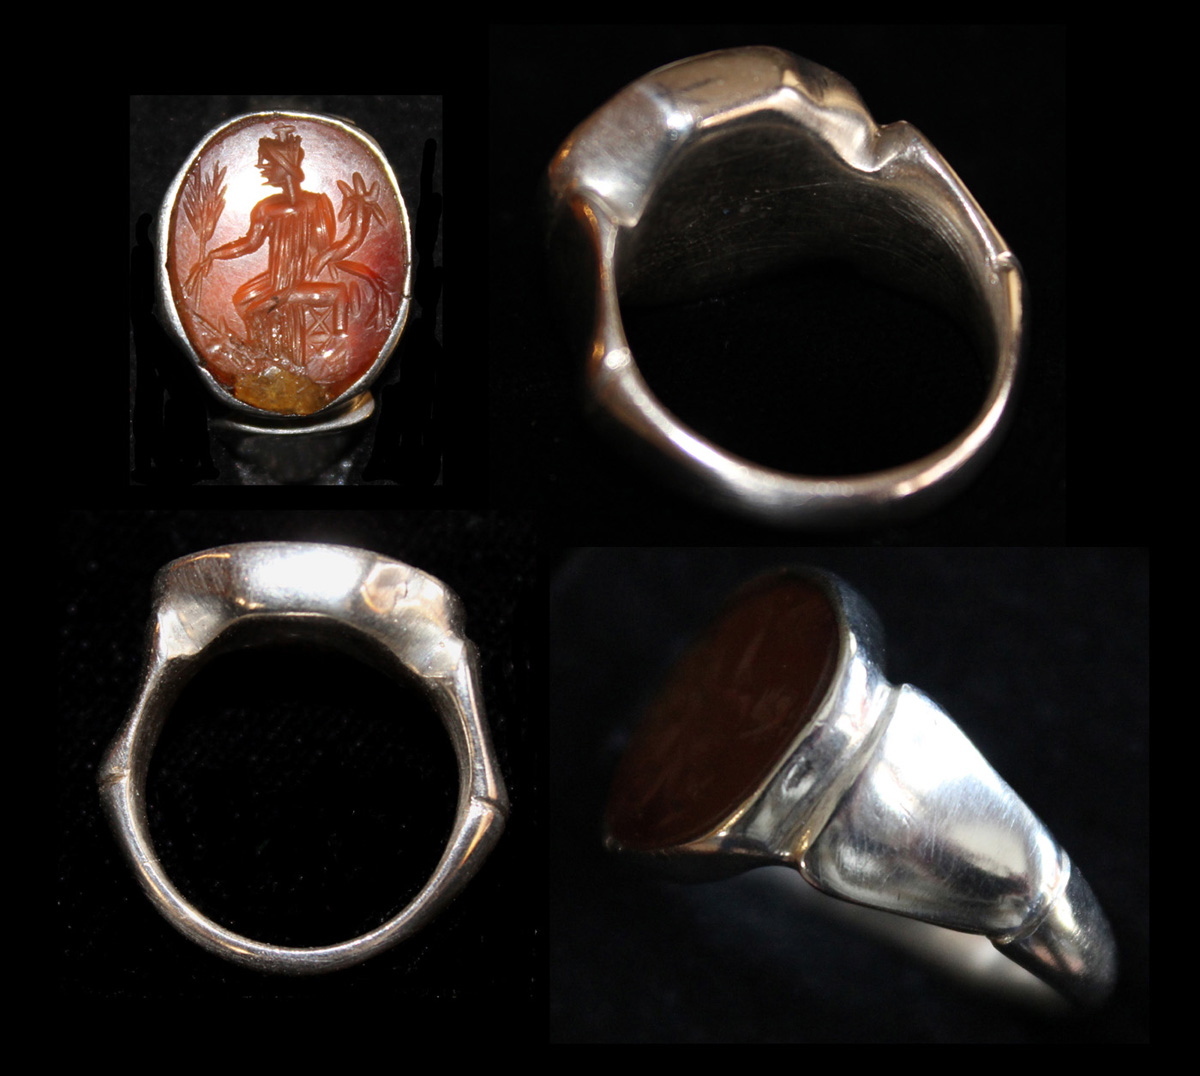 ae88a76a67257 Ring, Roman, Silver with Carnelian Fortuna Intaglio, c. 3rd Cent